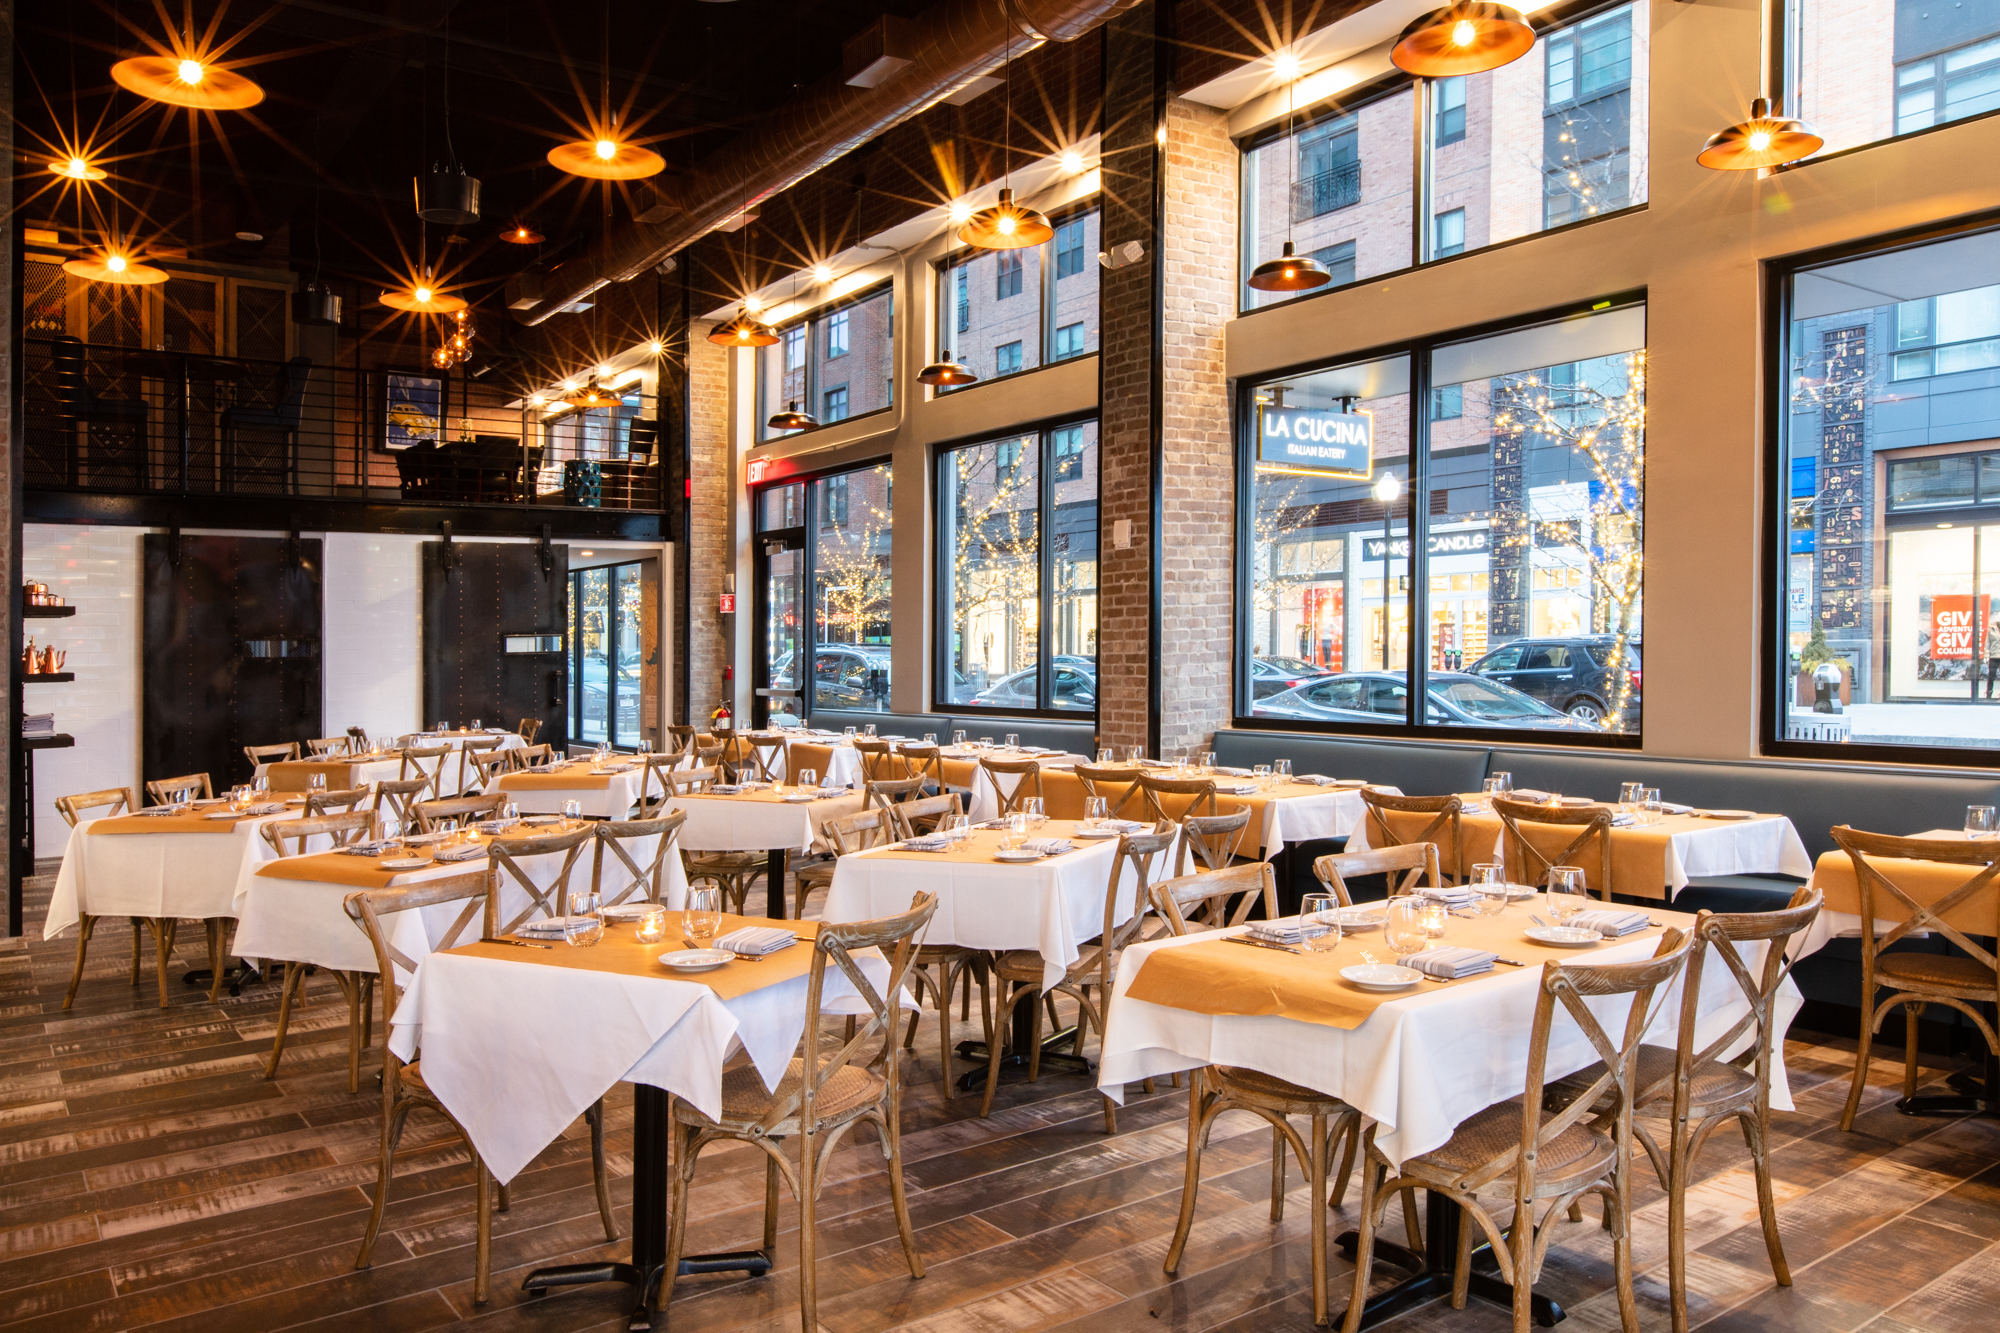 Cucina Restaurant Orleans Boston S New Restaurant Openings Boston The Infatuation